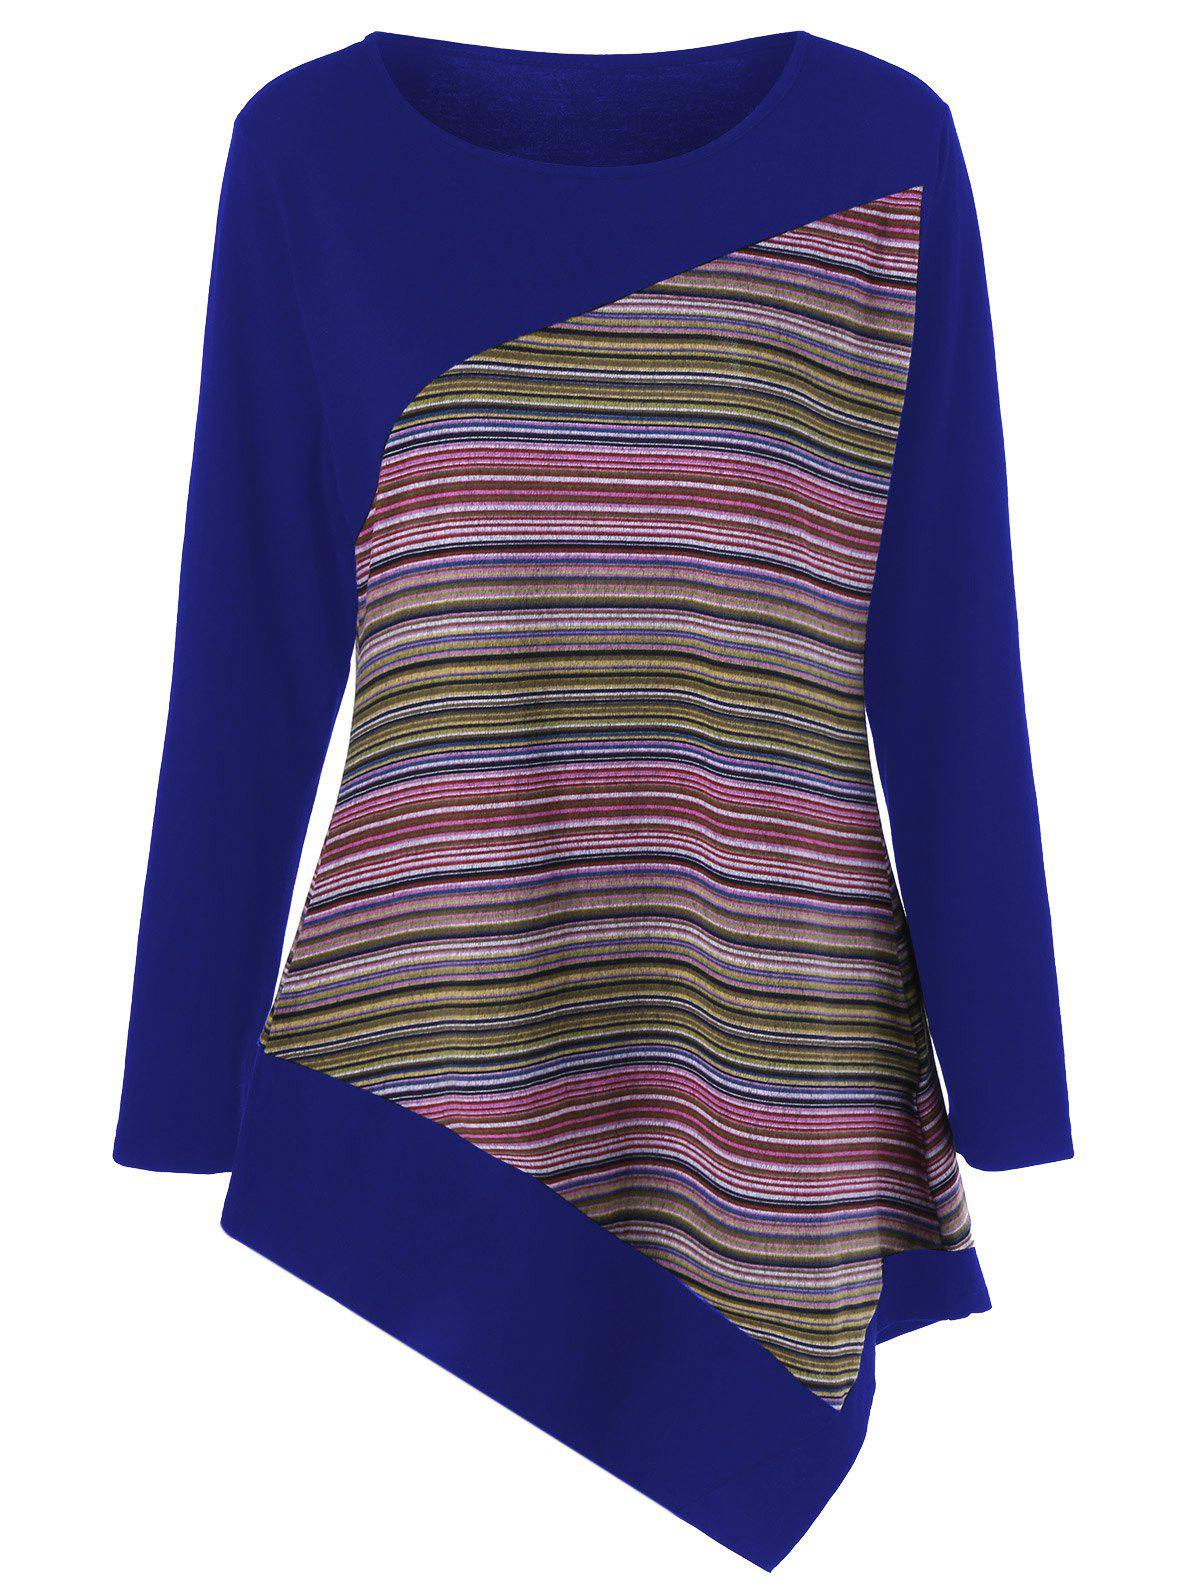 Store Long Sleeve Colorful Striped Asymmetric Tunic T-Shirt